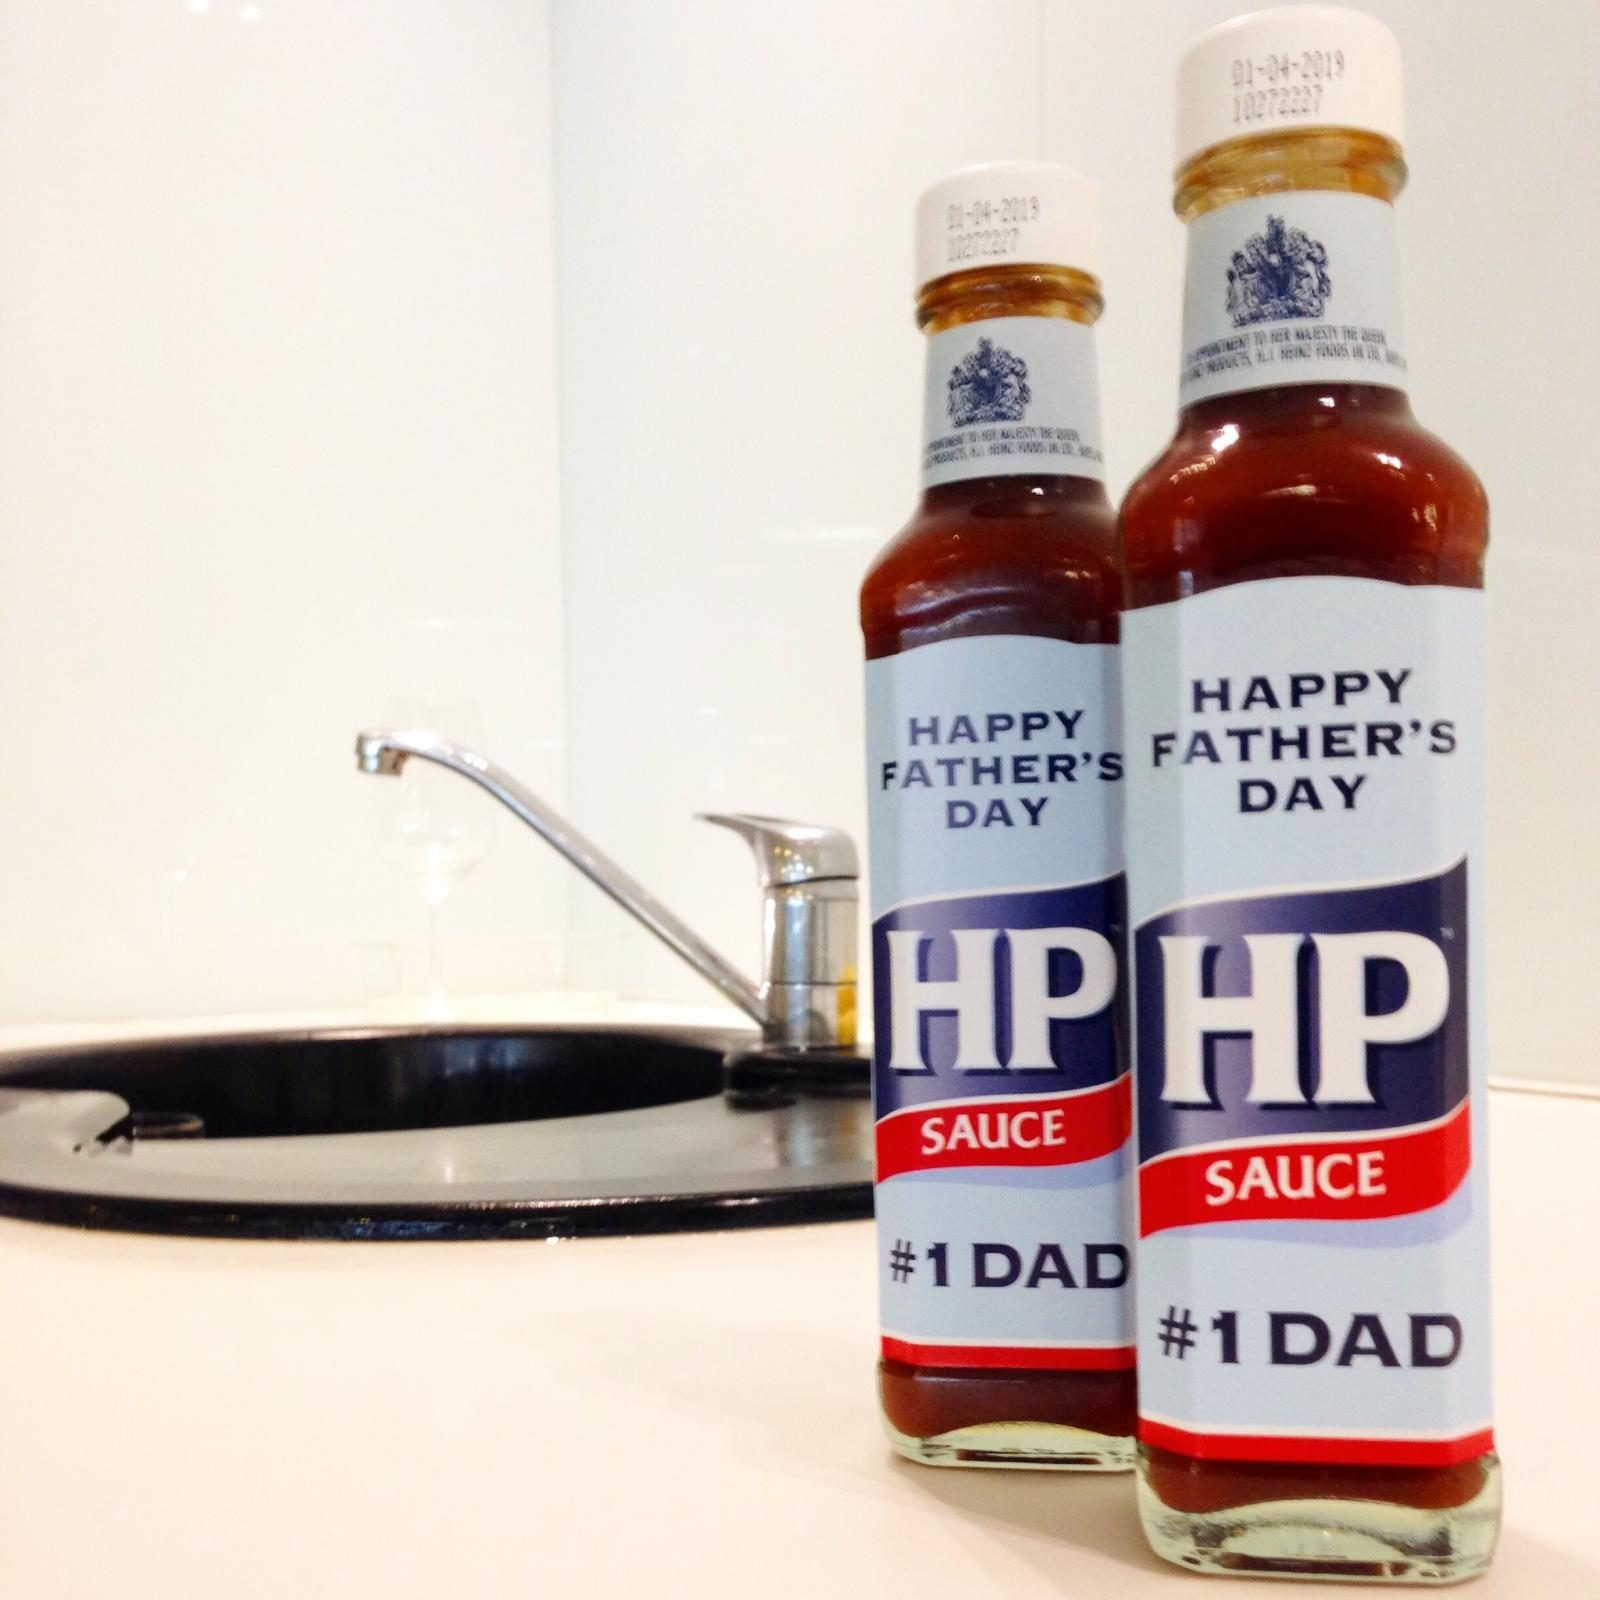 Forgot to buy a present for Father's Day? NEVER FEAR! Enter my exclusive competition today to win a money can't buy gift that every dad will love, courtesy of Heinz HP Sauce!